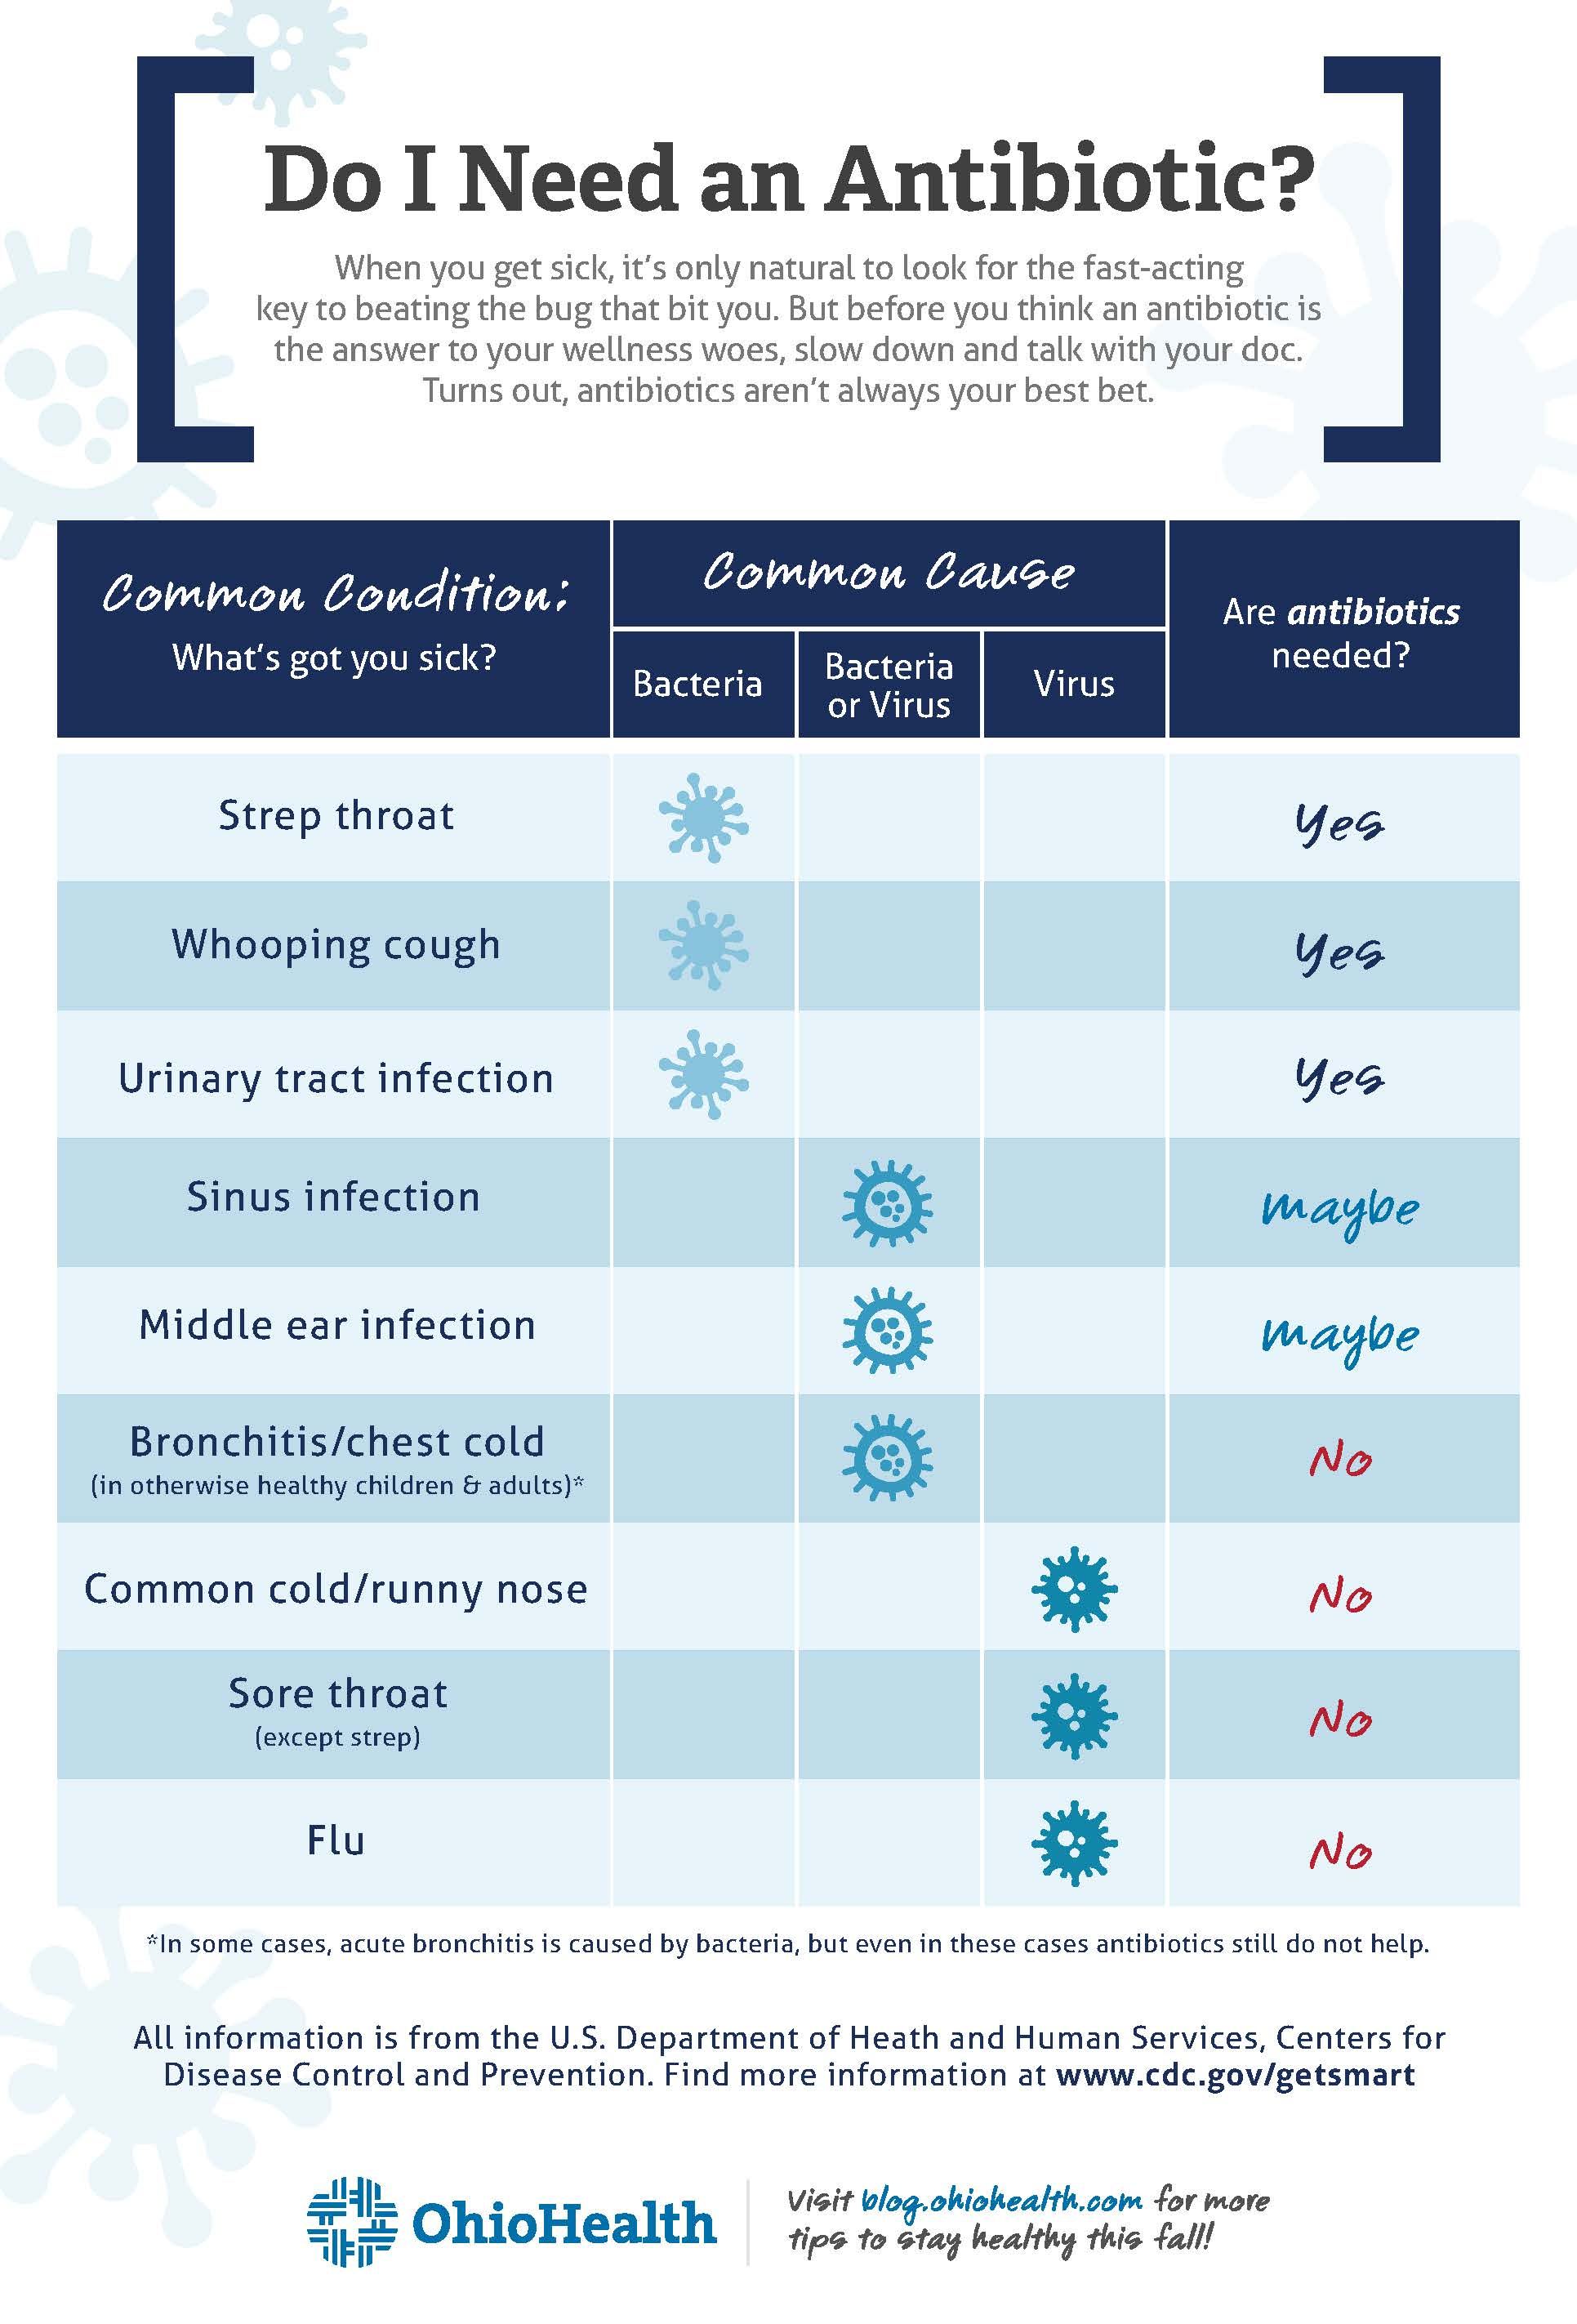 Infographic depicting which health conditions require antibiotics